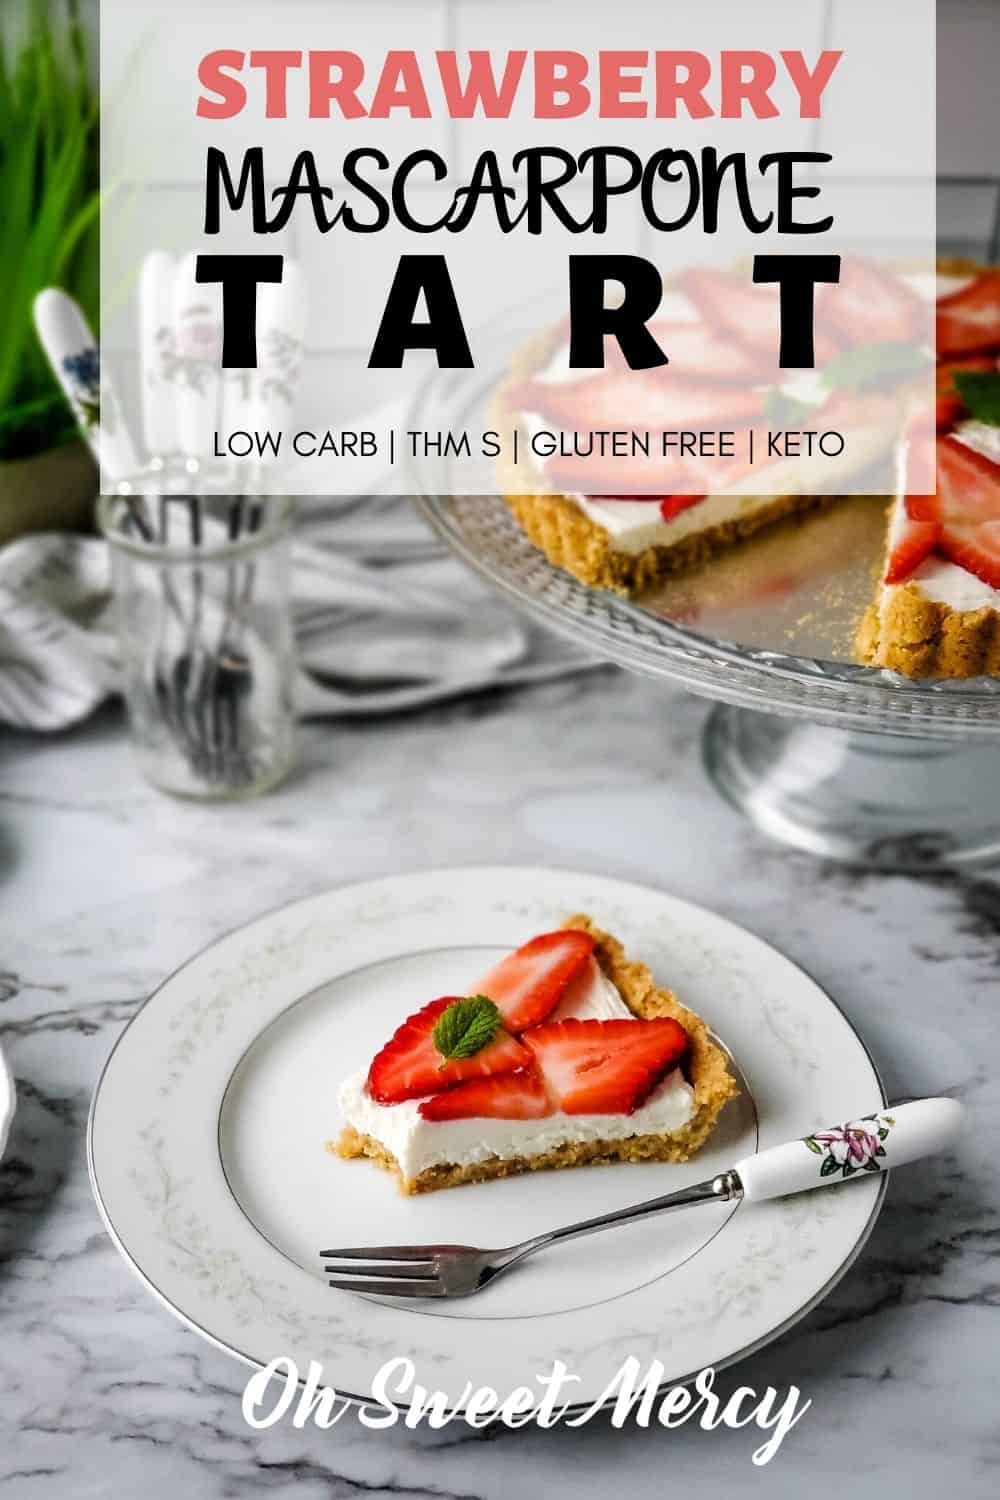 Make this easy, low carb, Strawberry Mascarpone Tart with those fresh, juicy, in-season strawberries! Perfect for summer desserts and totally THM and keto friendly. #thm #lowcarb #keto #sugarfree #glutenfree #easy #desserts #strawberries